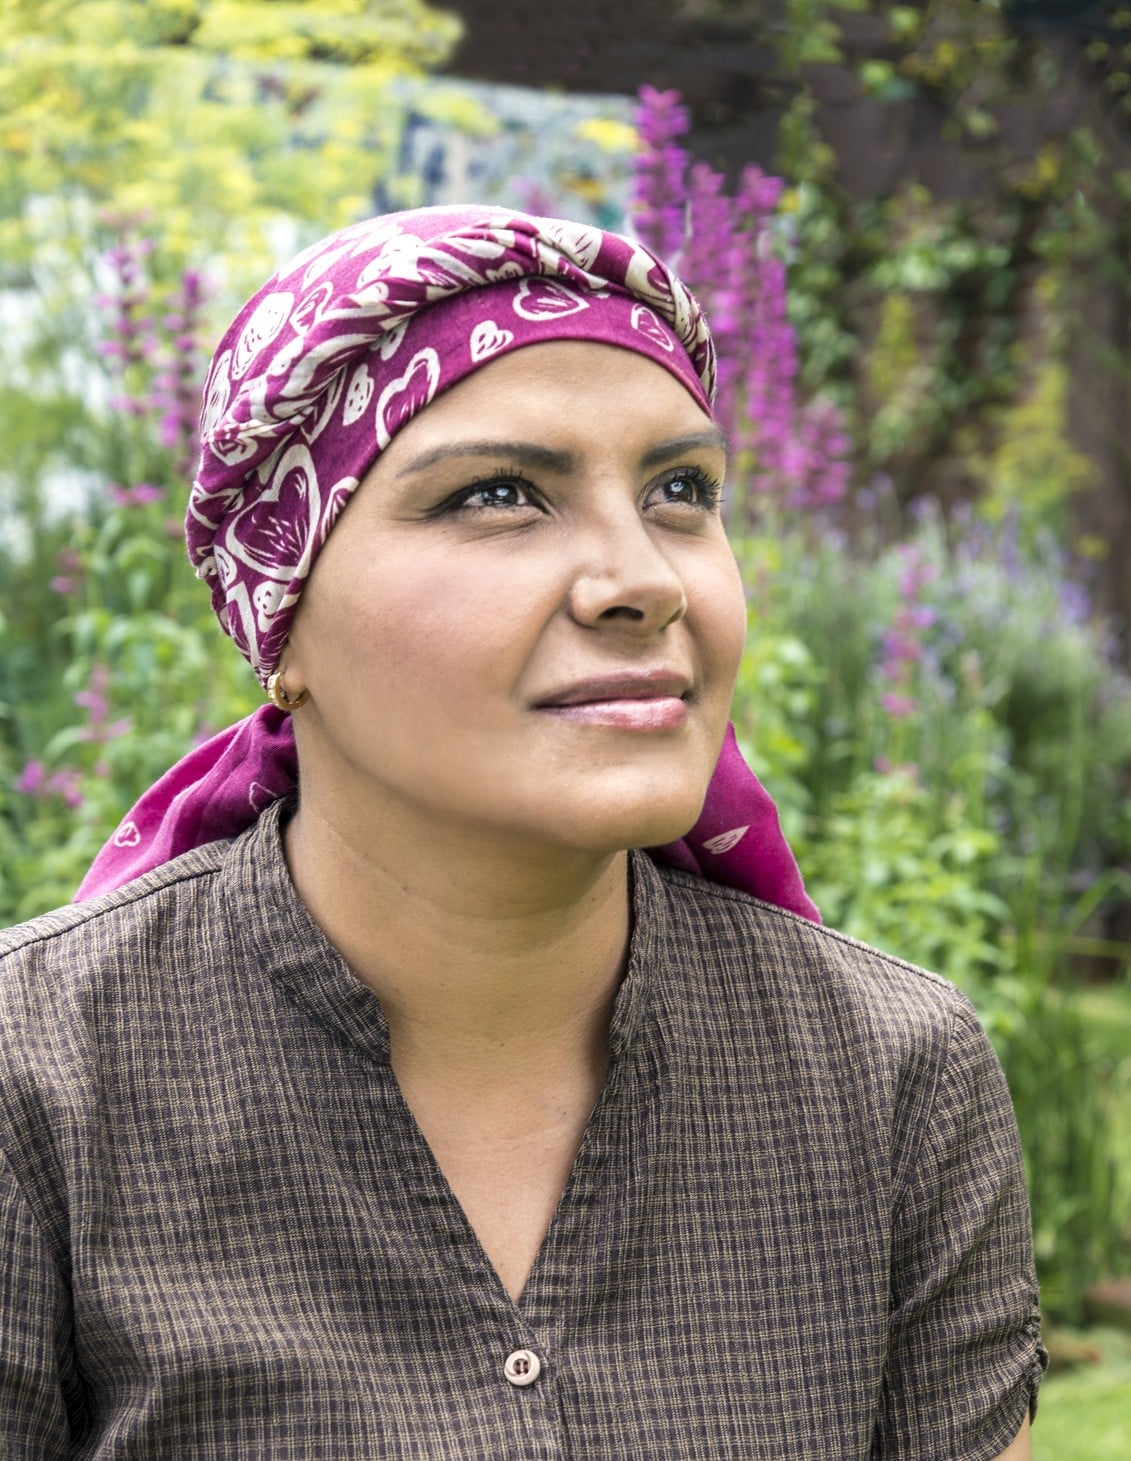 This beautiful woman is under chemotherapy treatment to cure breast cancer